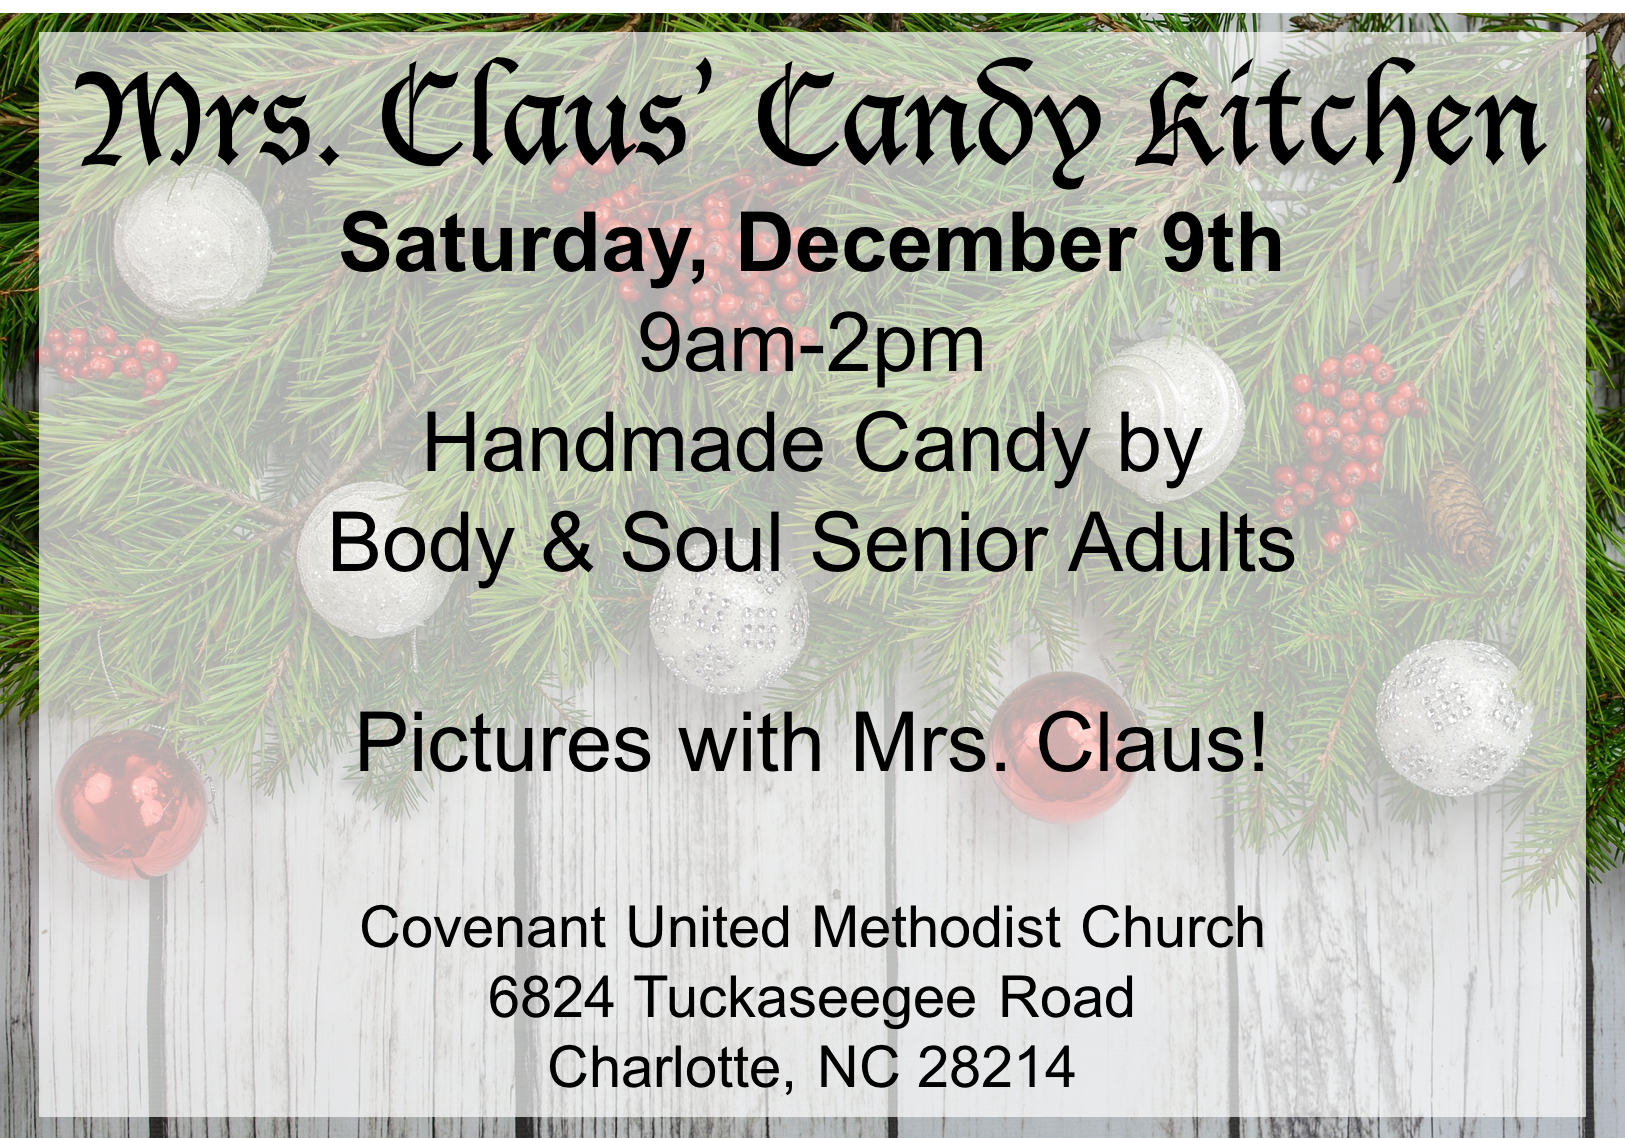 Mrs. Claus' Candy Kitchen